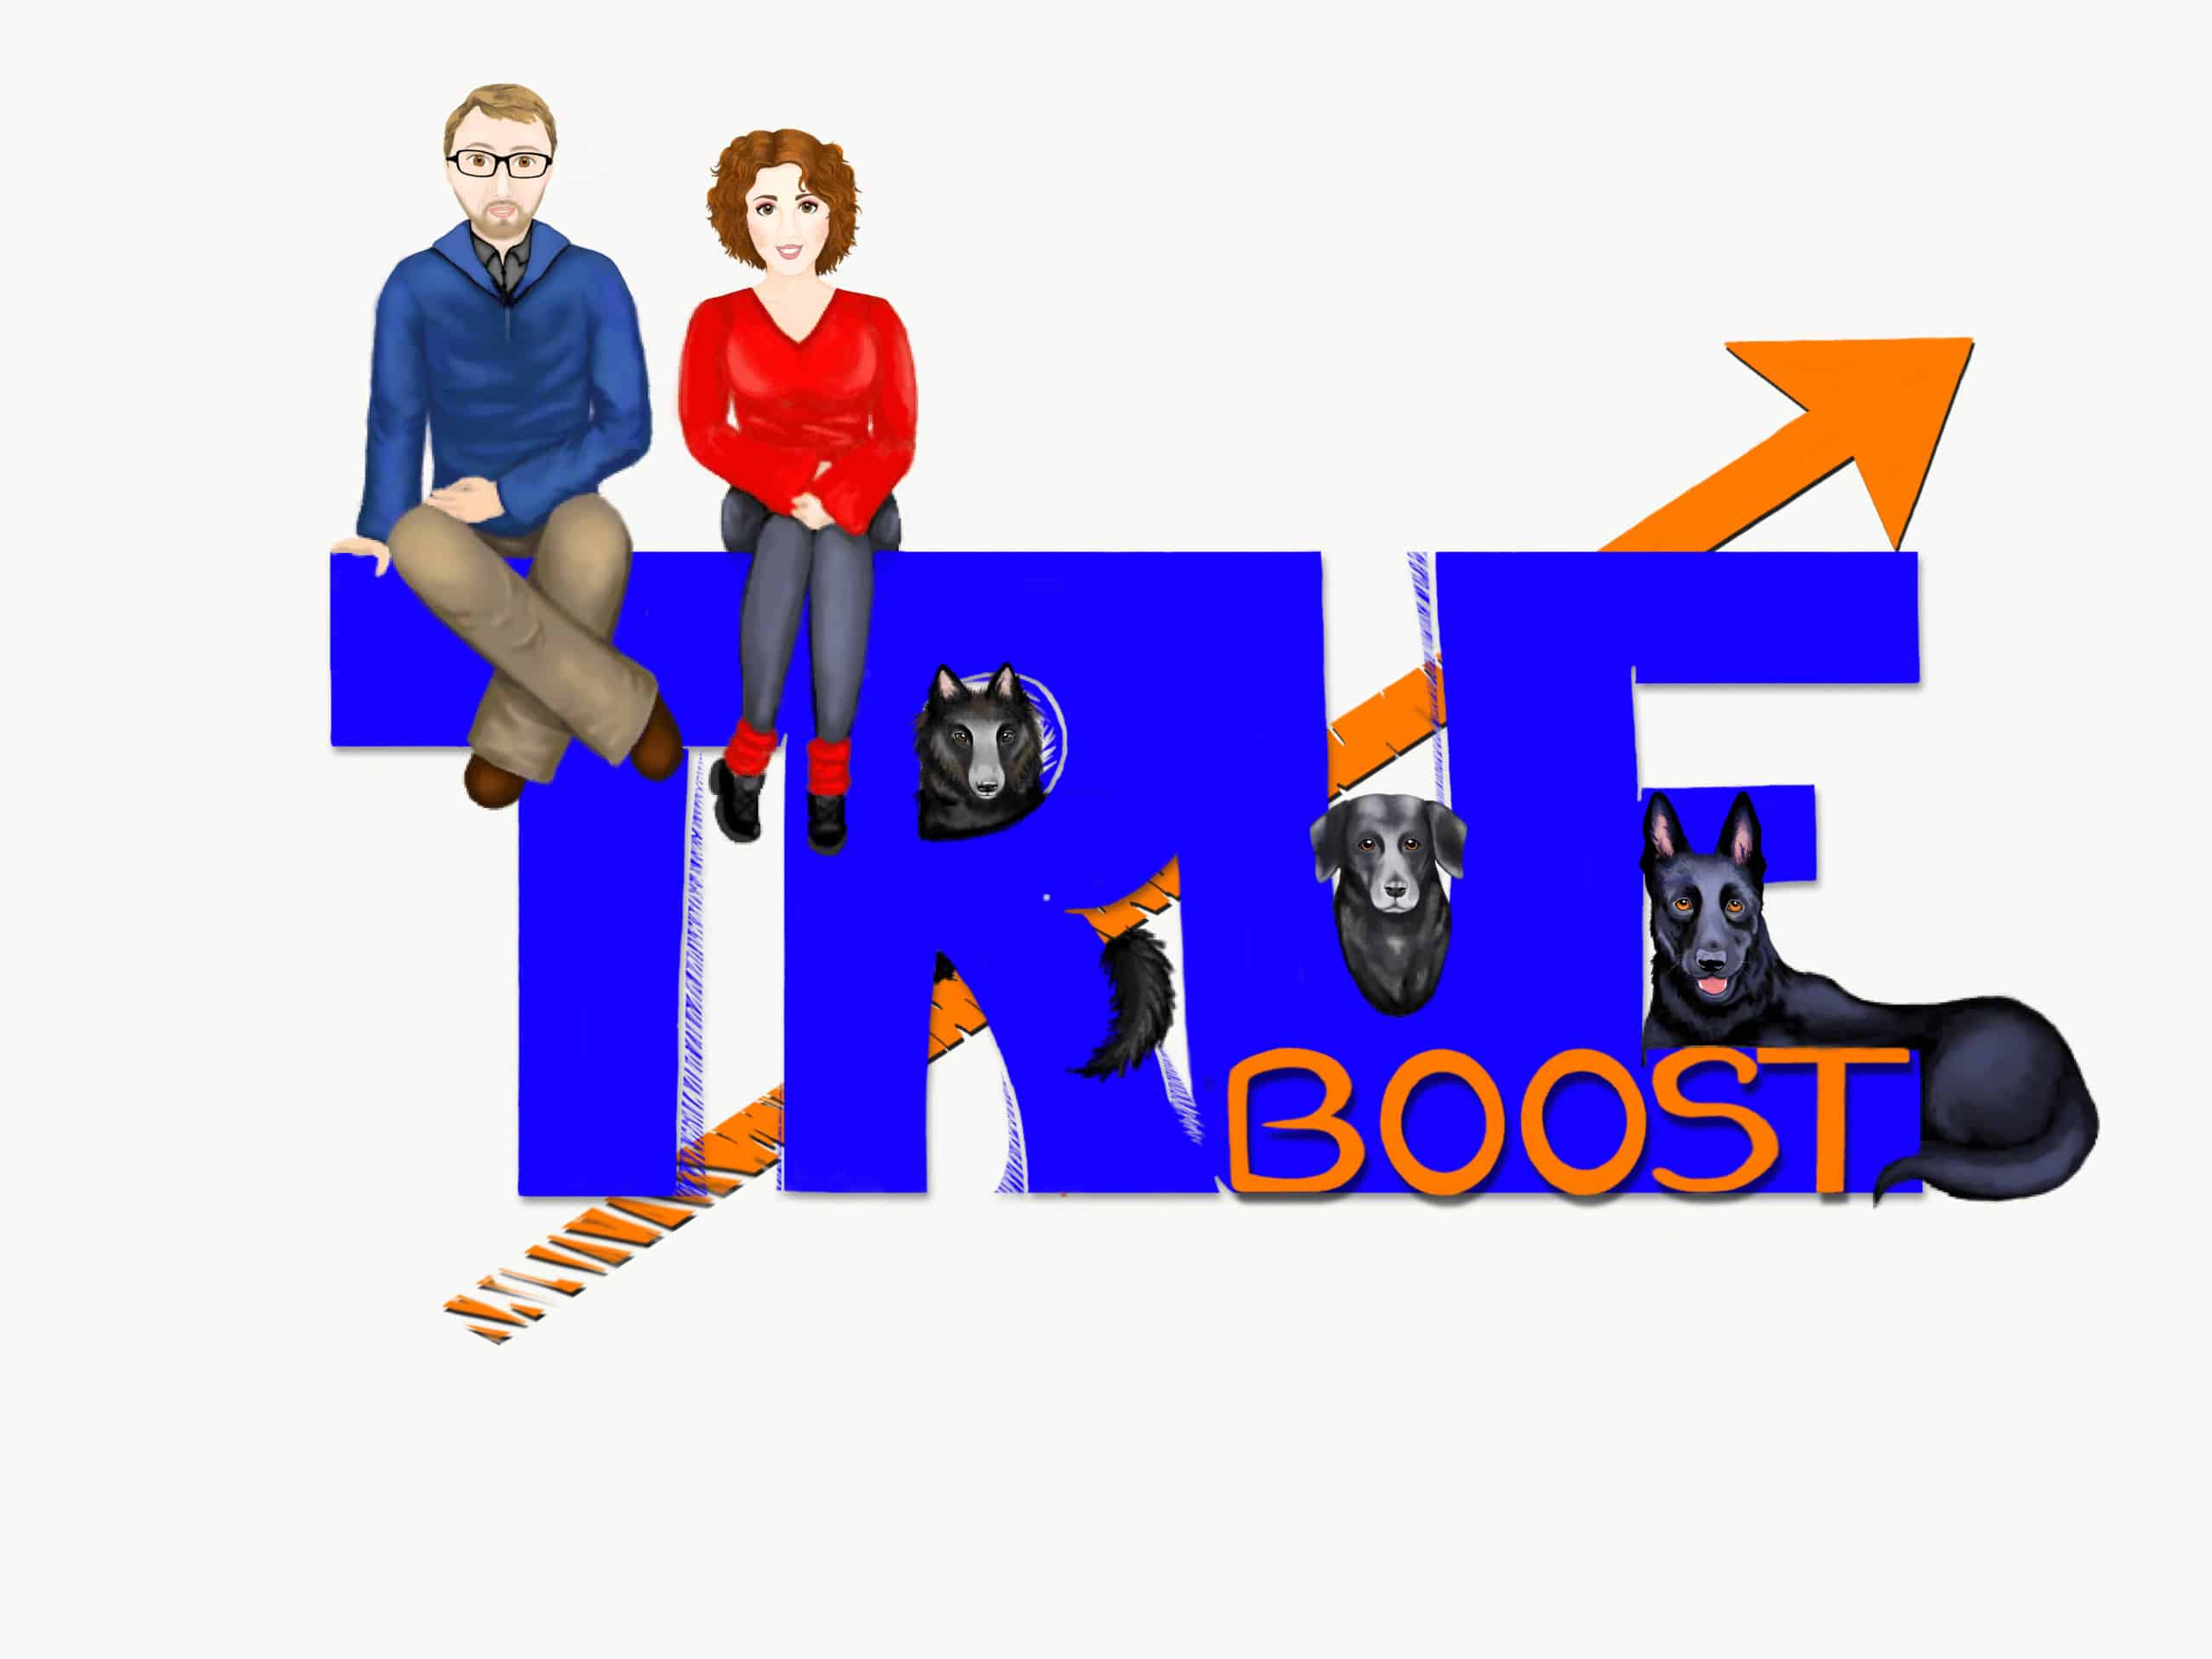 true boost digital team